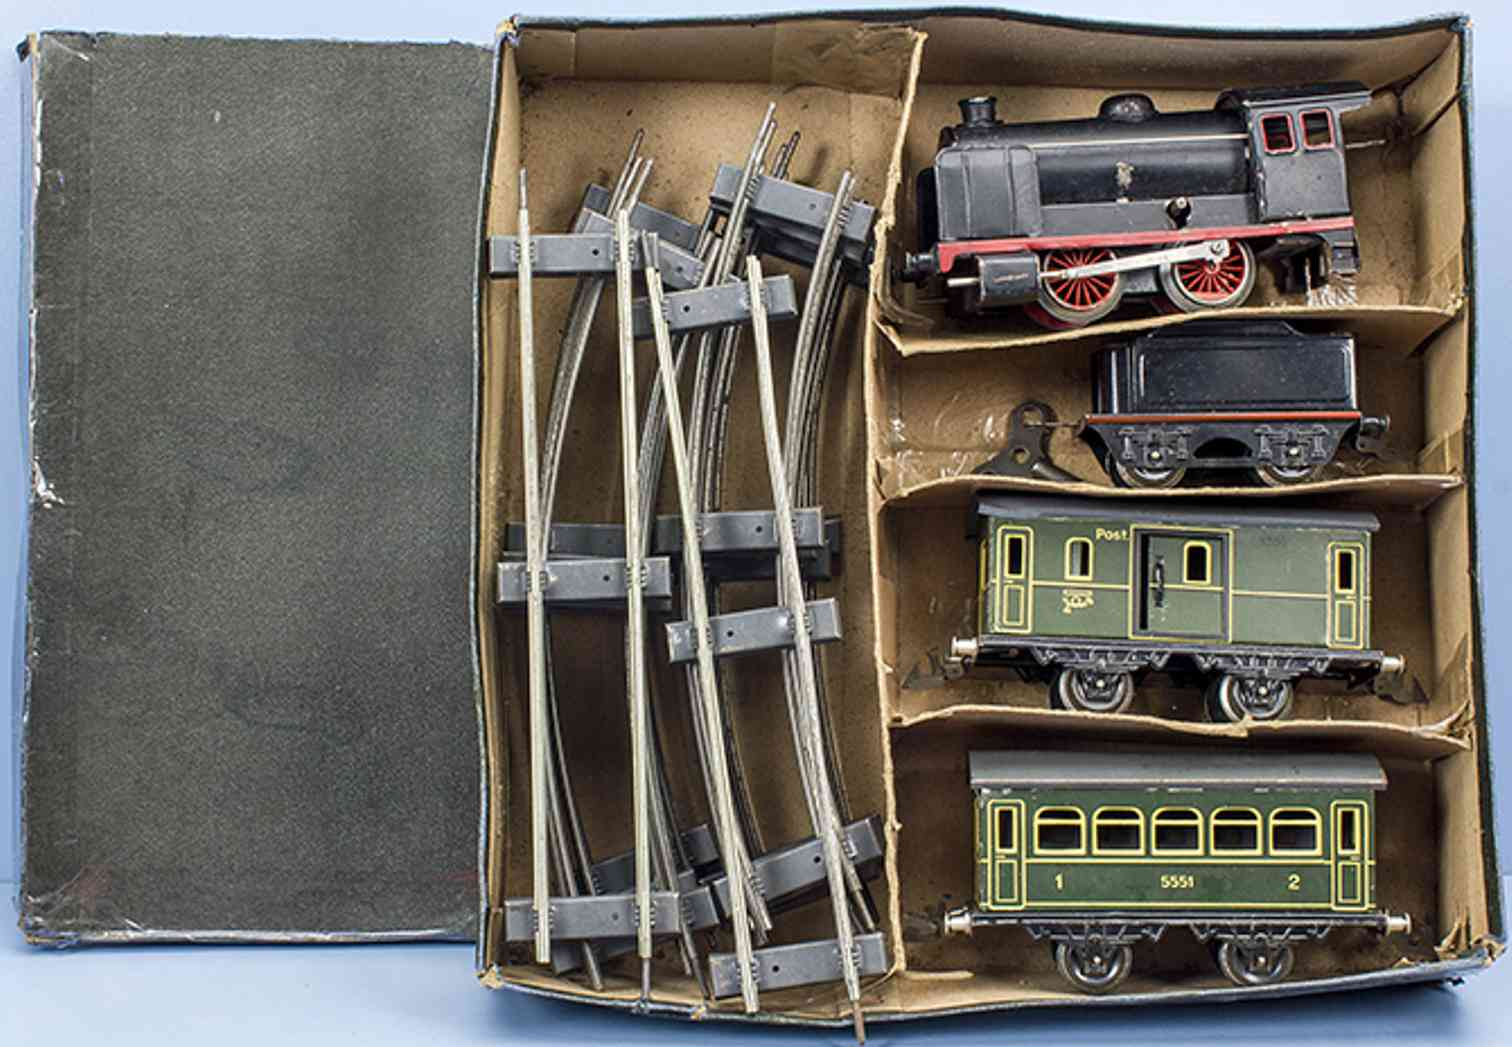 doll railway toy start package with passenger train loco tender 2 cars gauge 0